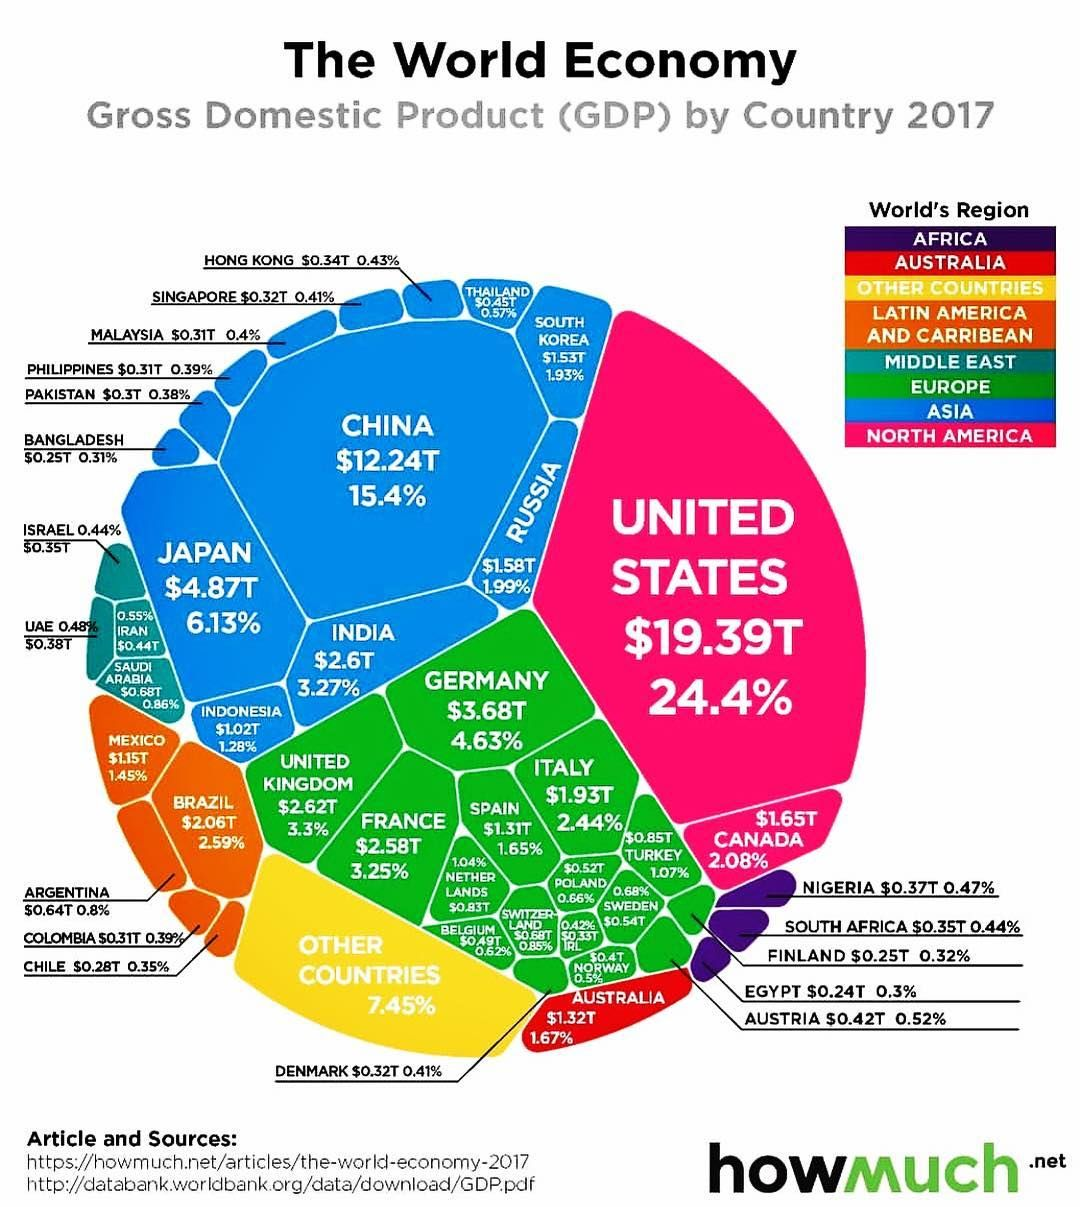 Pin By Adity Choudhary On Infographic Information Economy Infographic Global Economy World Geography